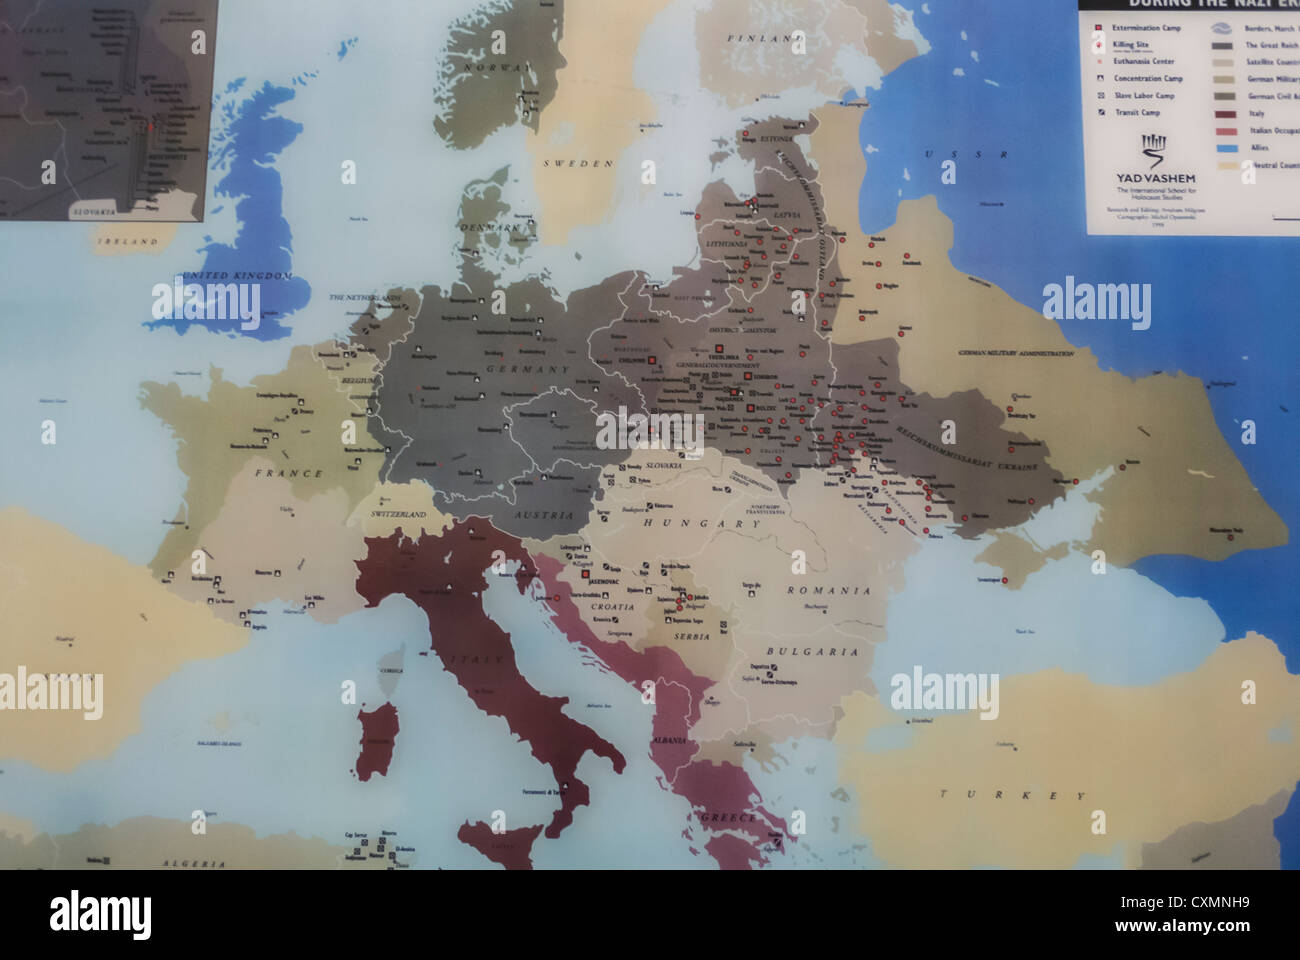 Nazi Map Of Europe.Old Map Of Europe Nazi Concentration Camps U N United Nations